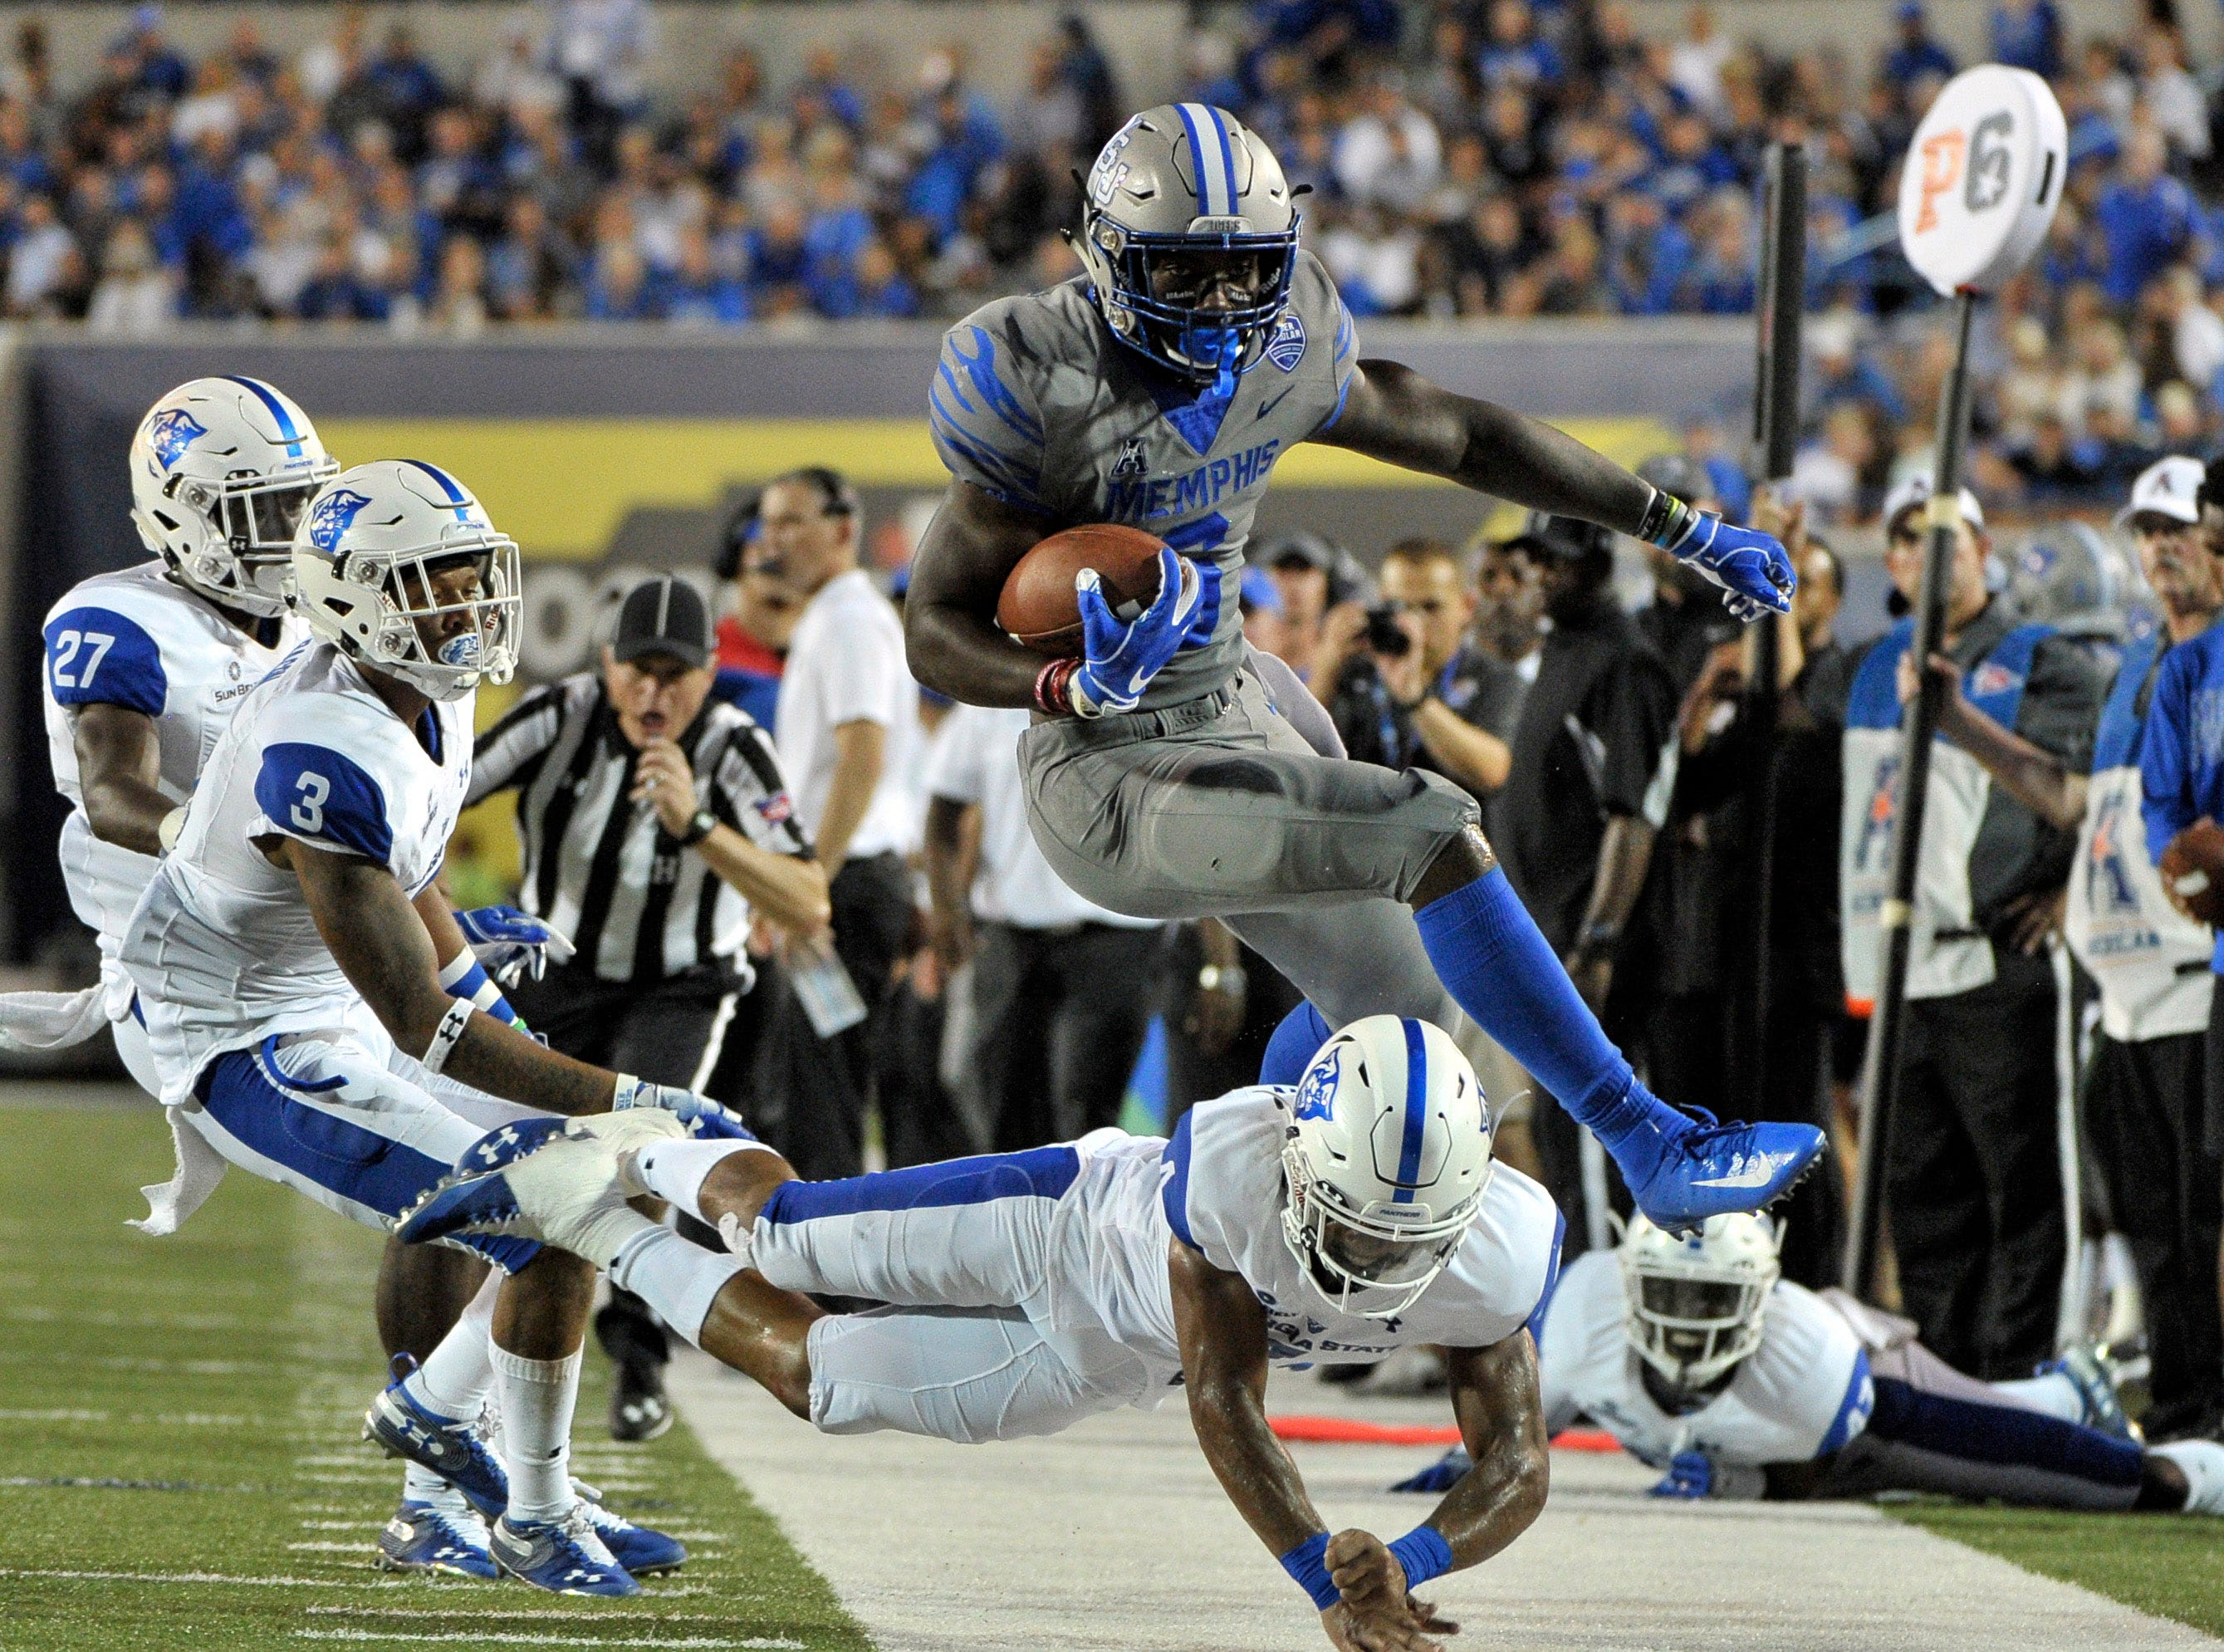 Memphis Tigers running back Patrick Taylor Jr. (6) is tackled by Georgia State Panthers cornerback Khai Anderson (4) during the first half at Liberty Bowl Memorial Stadium.